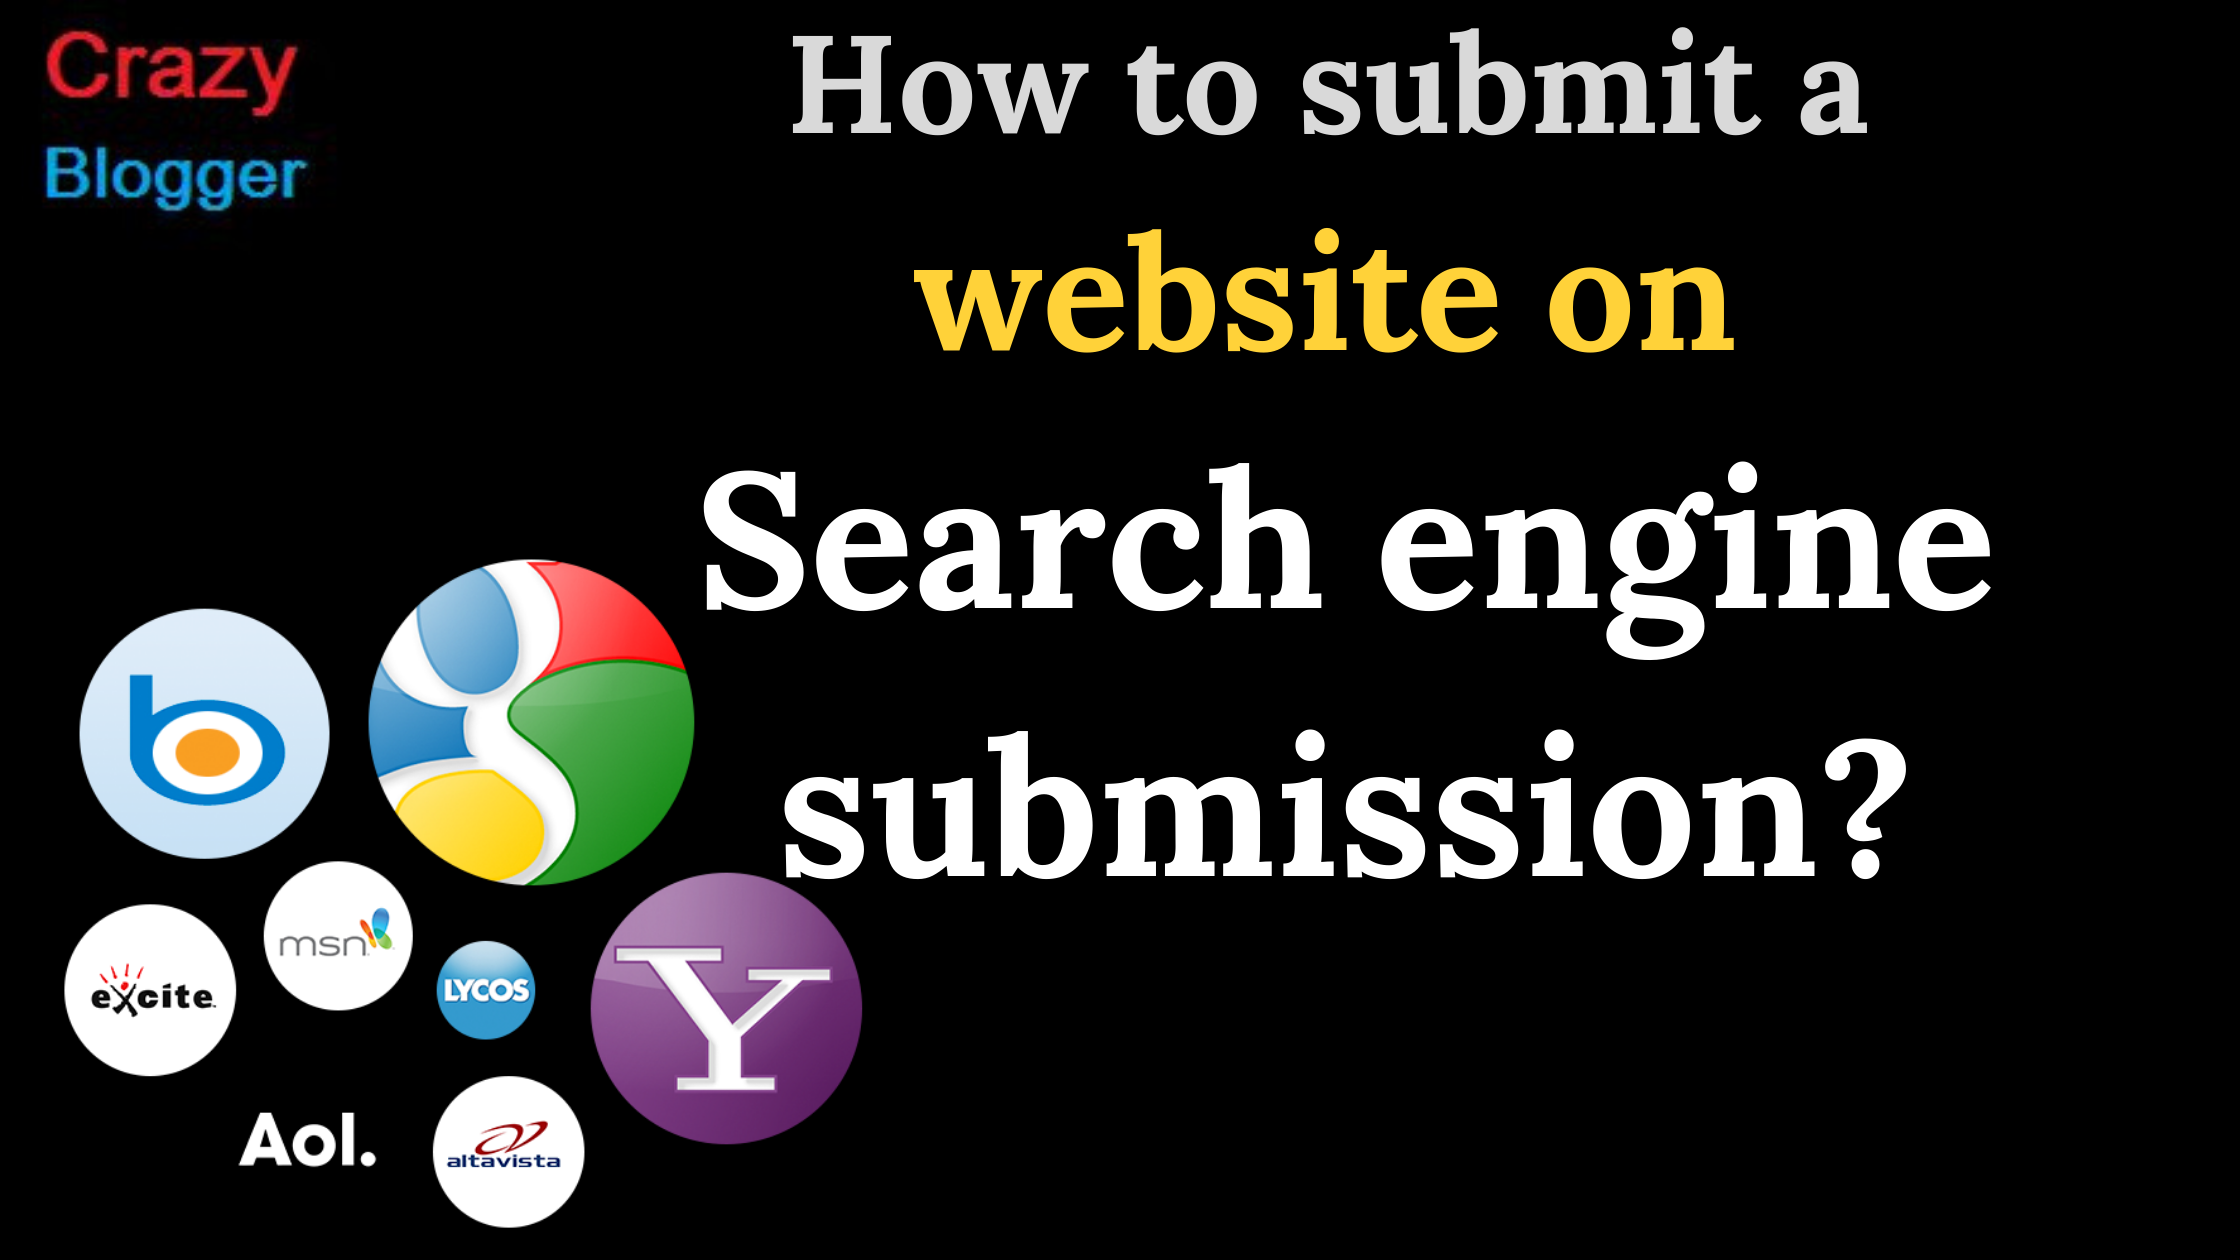 search engine submission sites, search engine submission list, free search engine submission sites list, search engine submission site list 2020, list of search engine submission sites, search engine submission websites, search engine submission sites list free, top search engine submission sites, high pr search engine submission sites, free search engine submission sites, best free search engine submission, high pr search engine submission sites list, search engine submission site list, search engine submission site lists